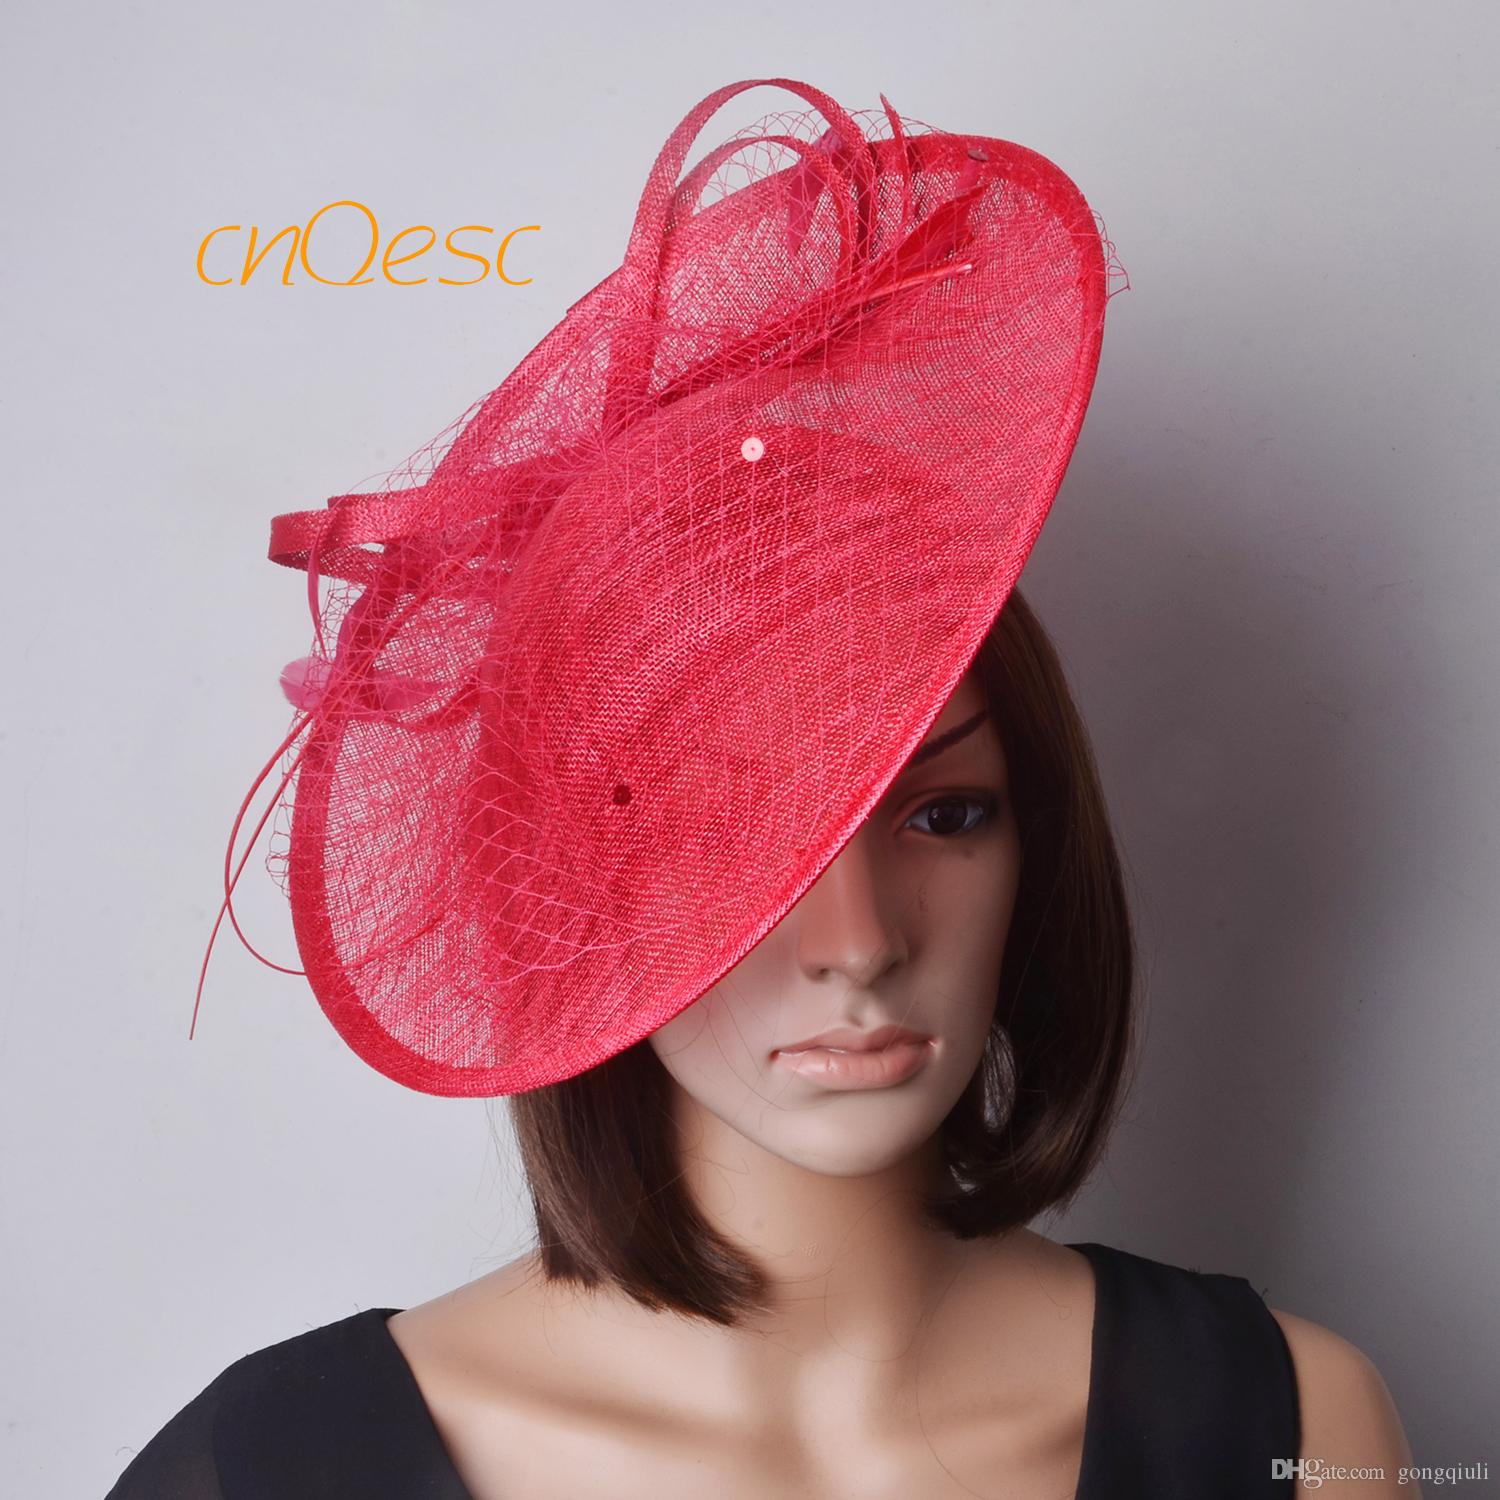 RED Saucer Fascinator Sinamay Fascinator Formal Hat For Races Wedding  Mother S Day Derby Navy Wedding Hats Occasion Hats Uk From Gongqiuli c21a41a2d94